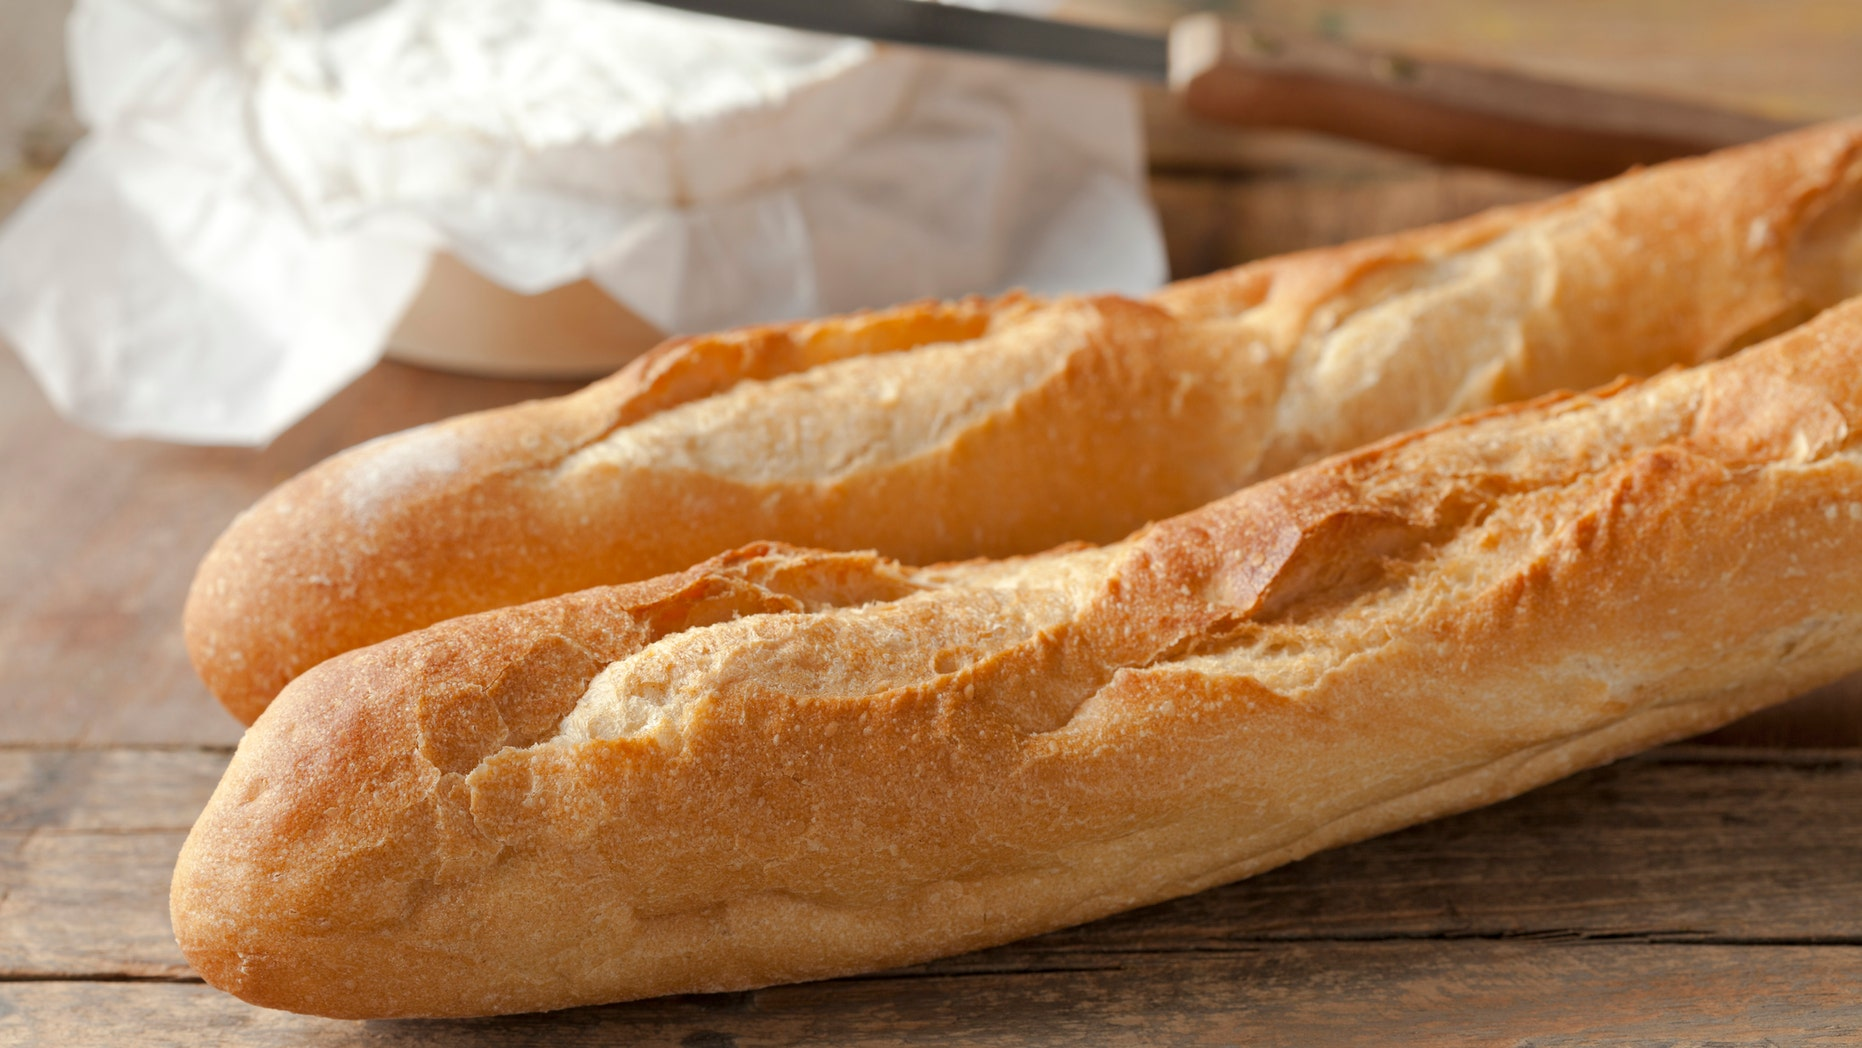 On Thursday, an animator named Dave asked the Twitterverse how a baguette would move if it suddenly became mobile.